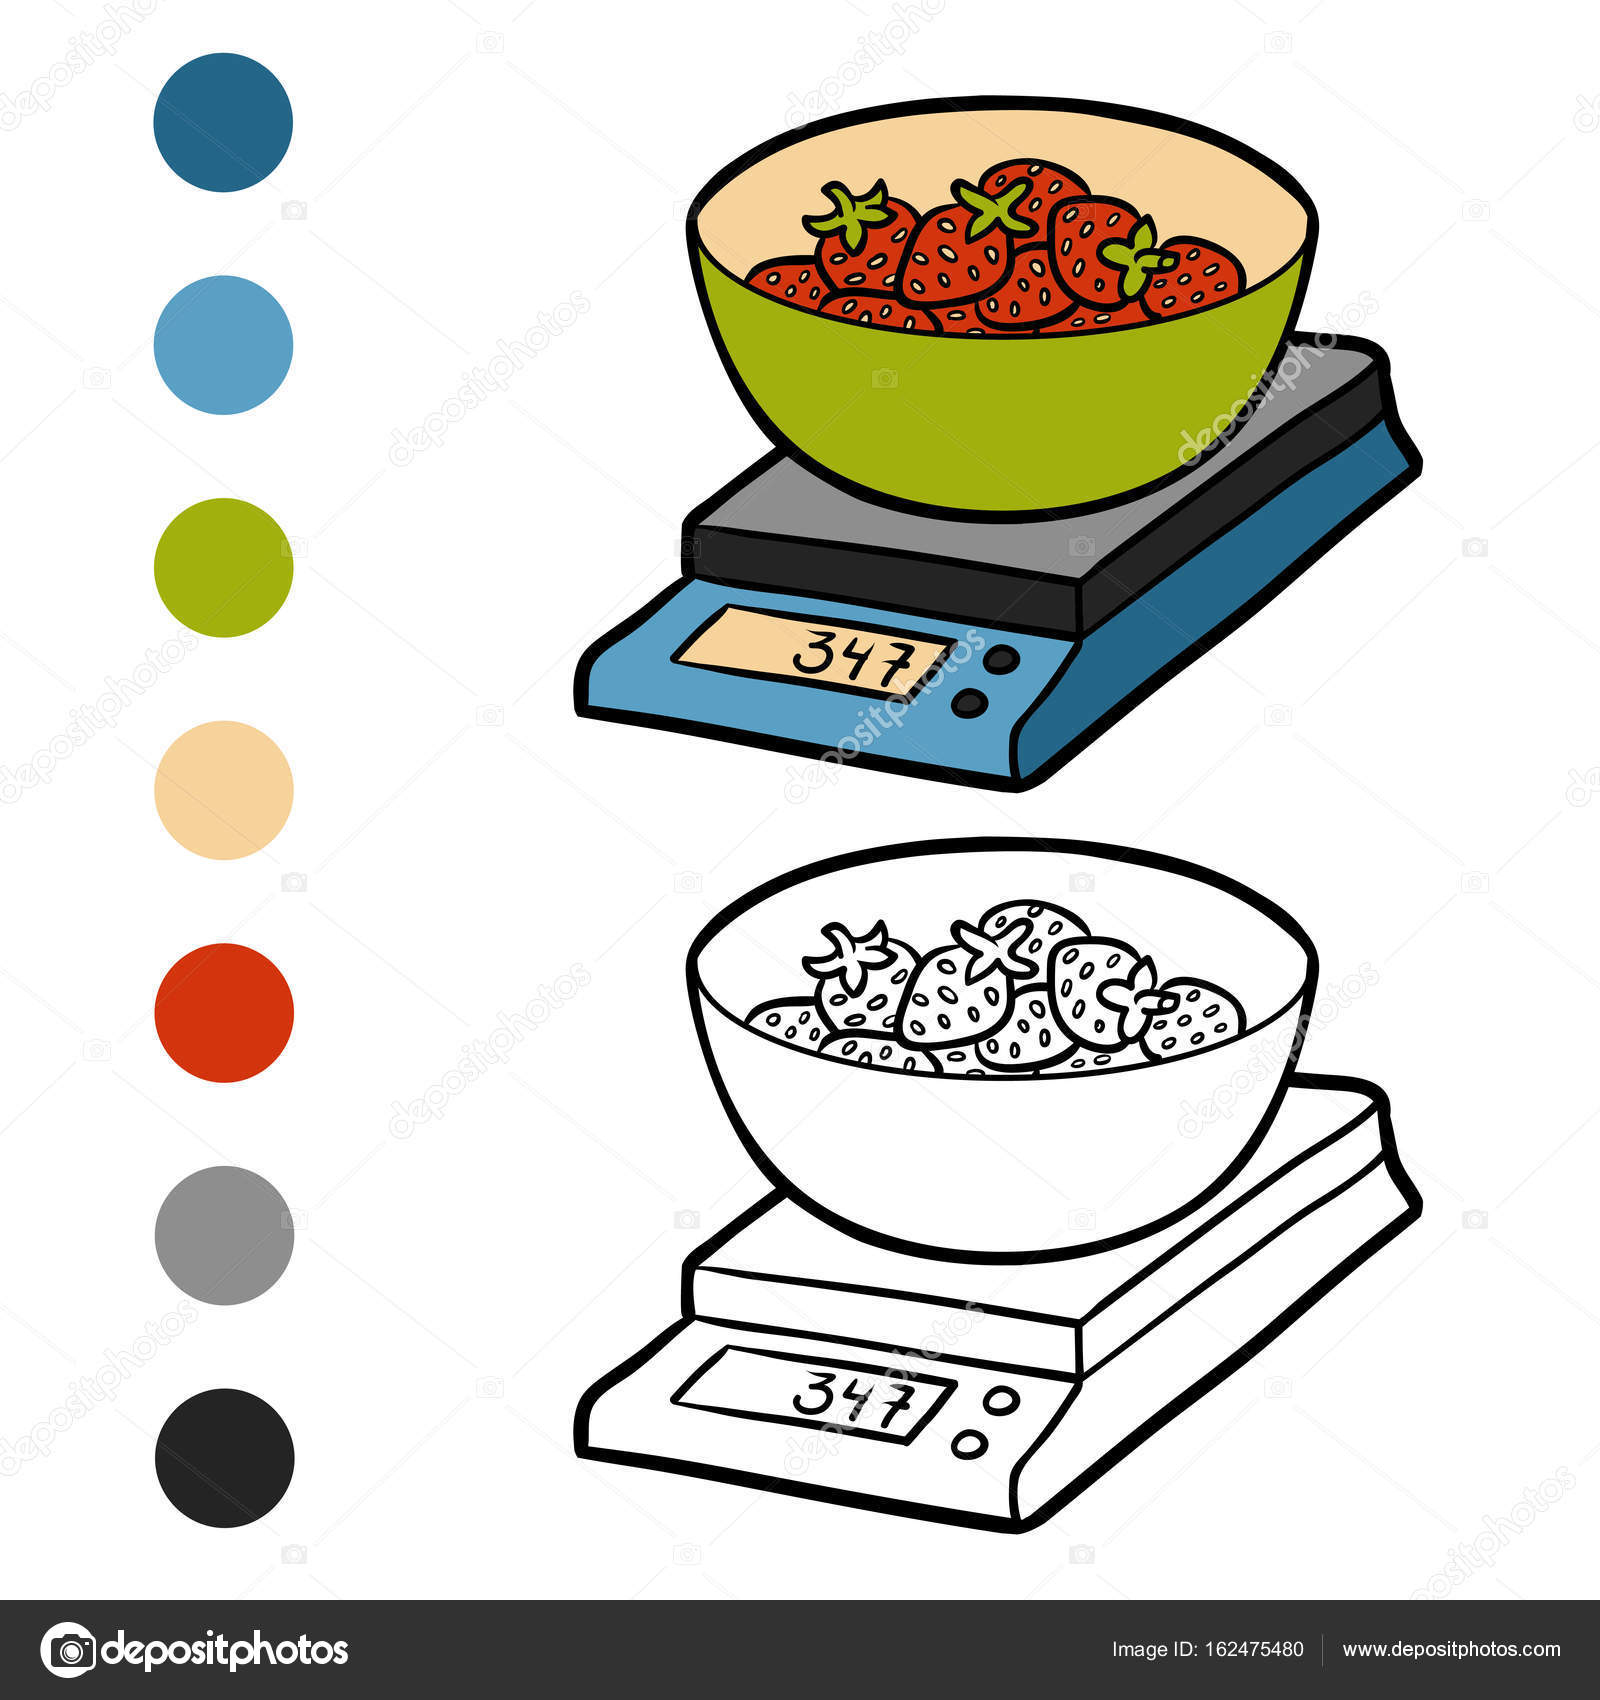 Coloring book kitchen - Coloring Book For Children Kitchen Scales And Strawberries Vector By Ksenya_savva